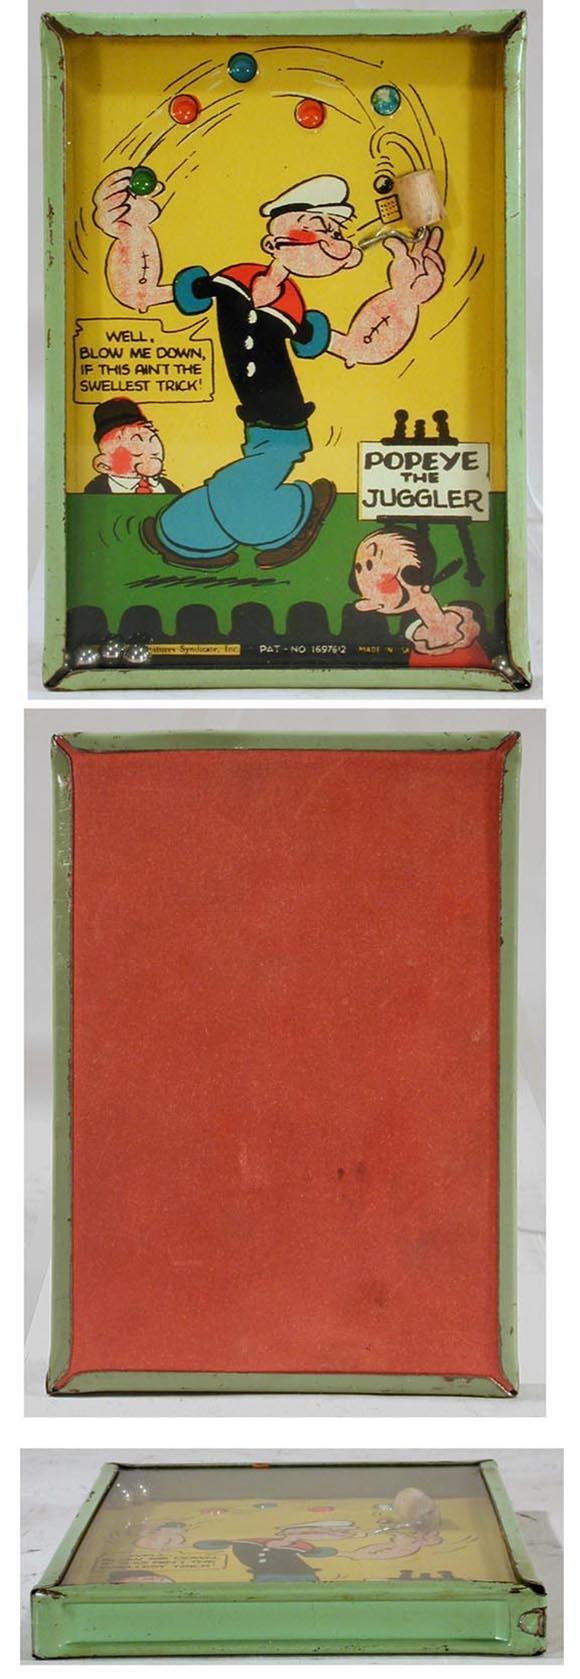 1929 Popeye the Juggler, Tin Litho Dexterity Toy